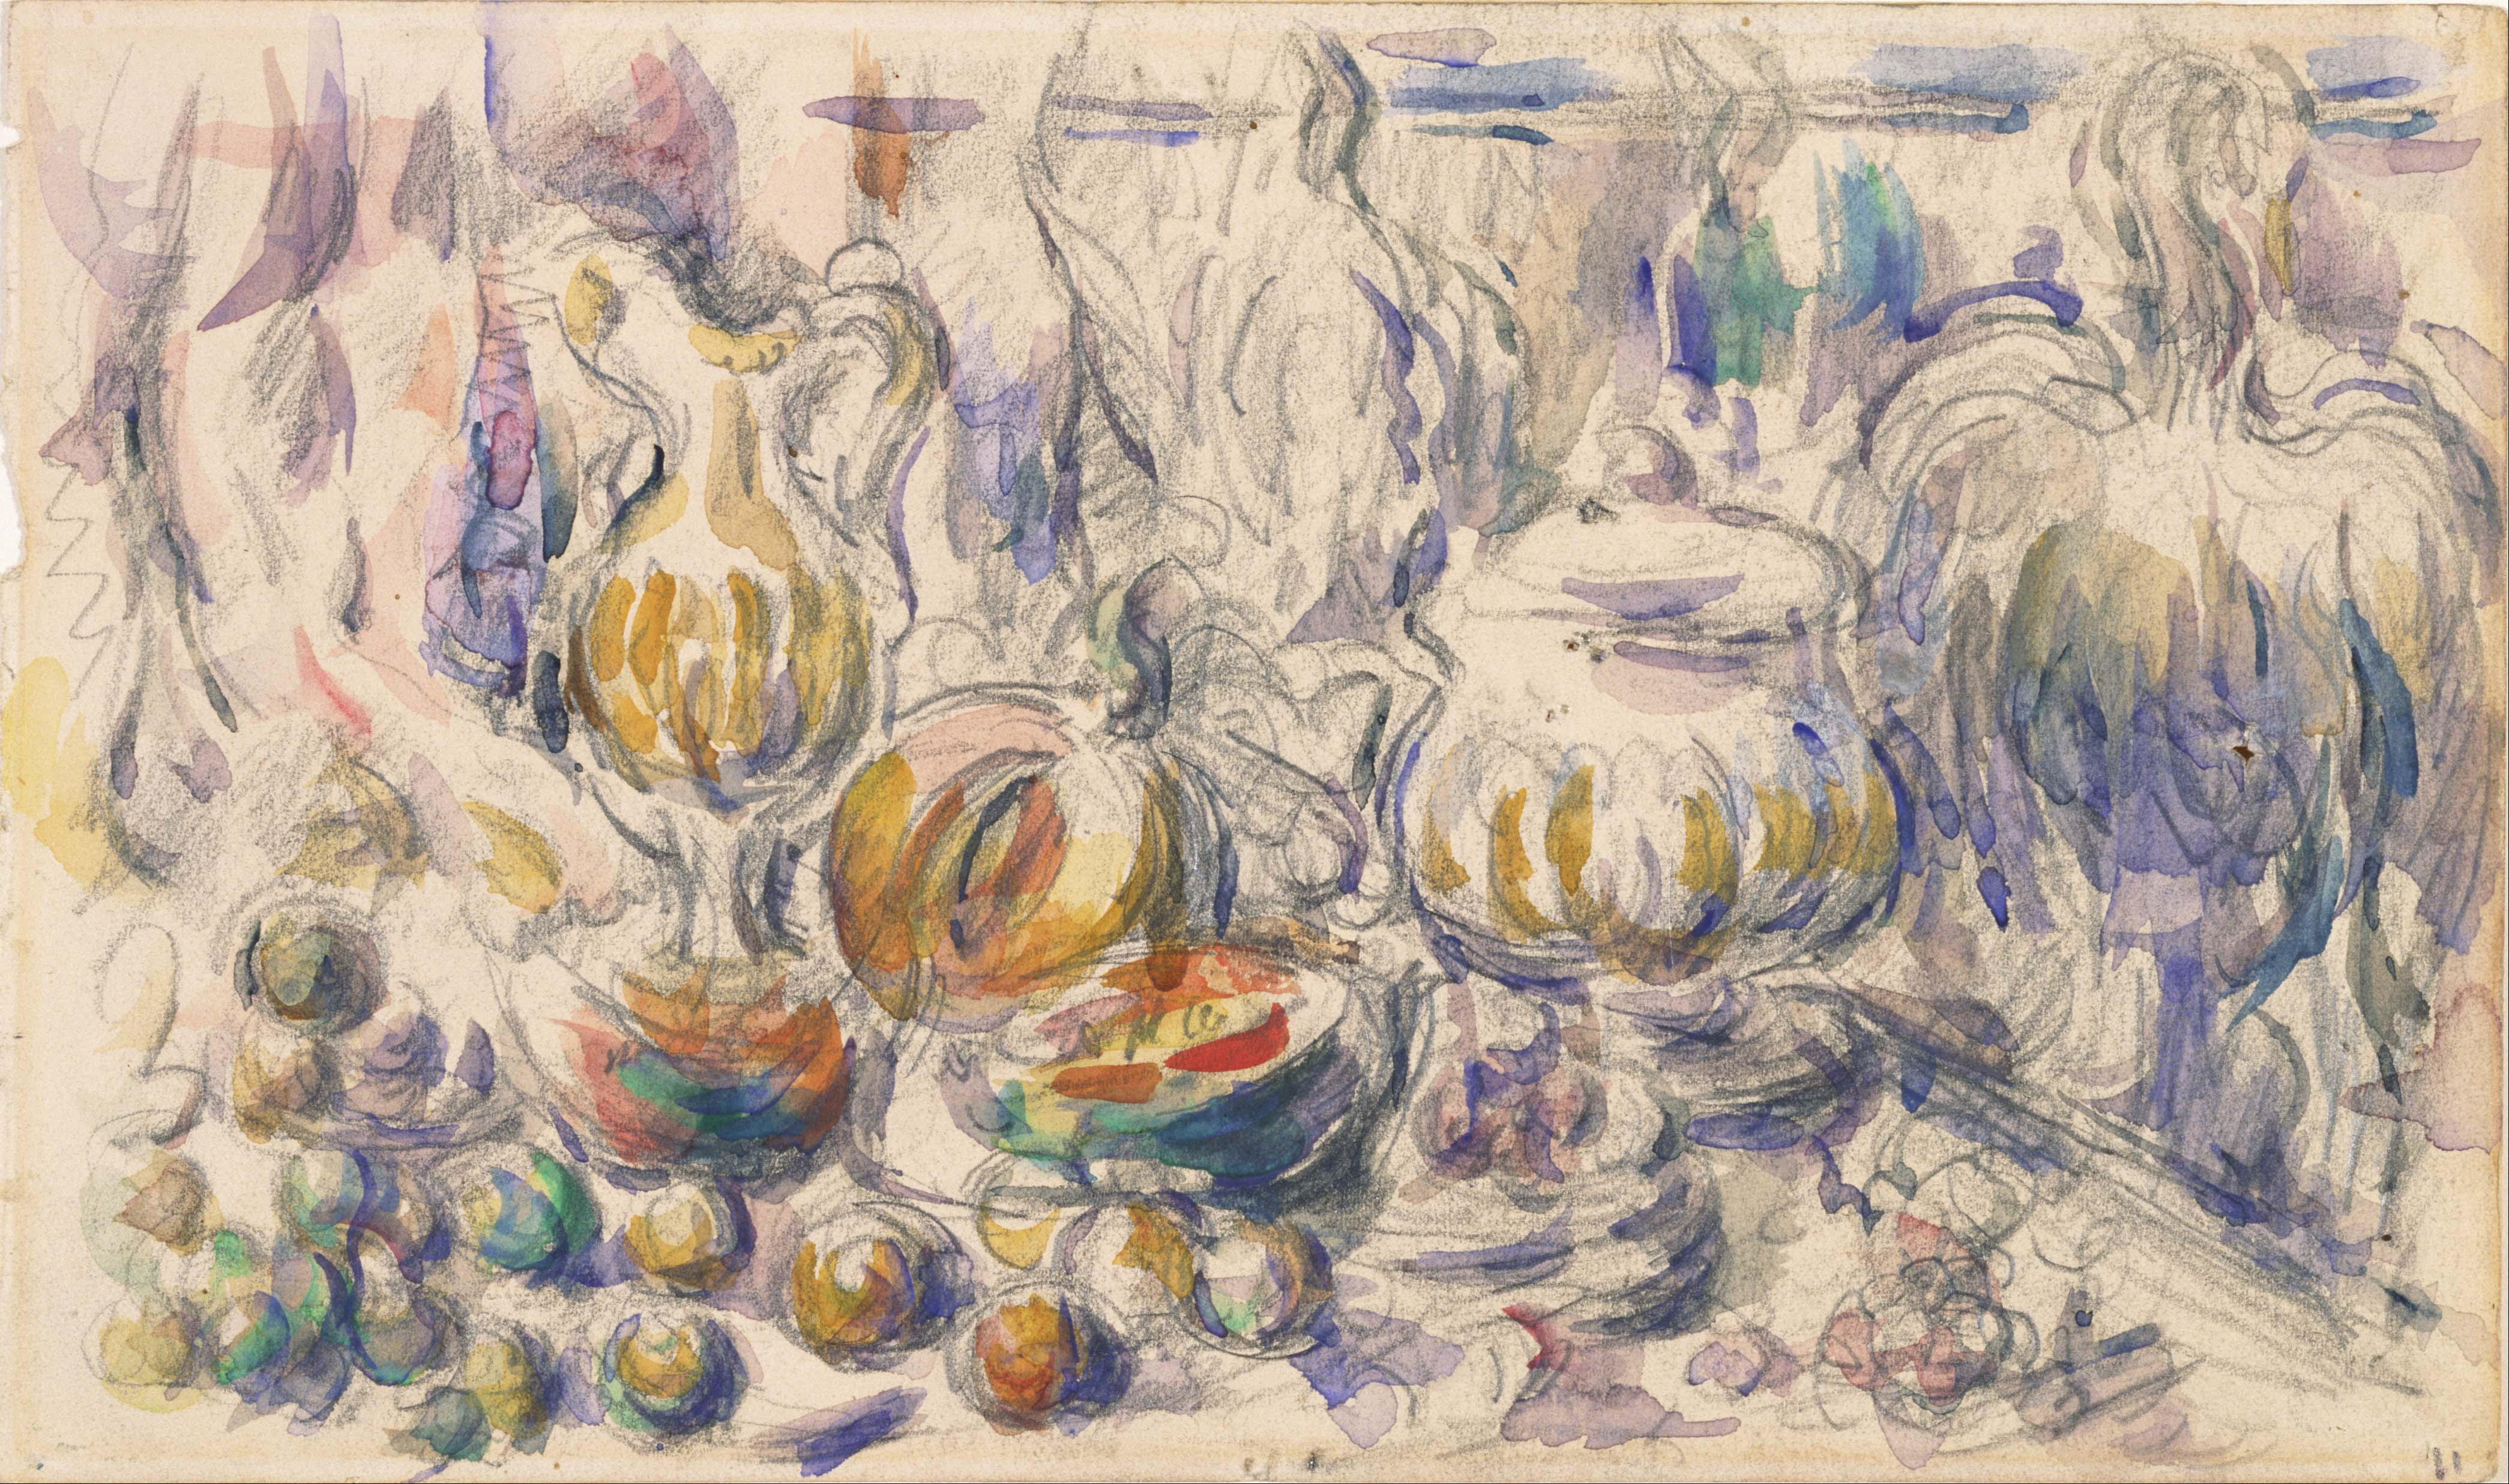 Paul_Cézanne_-_Pot_and_Soup_Tureen_-_Google_Art_Project